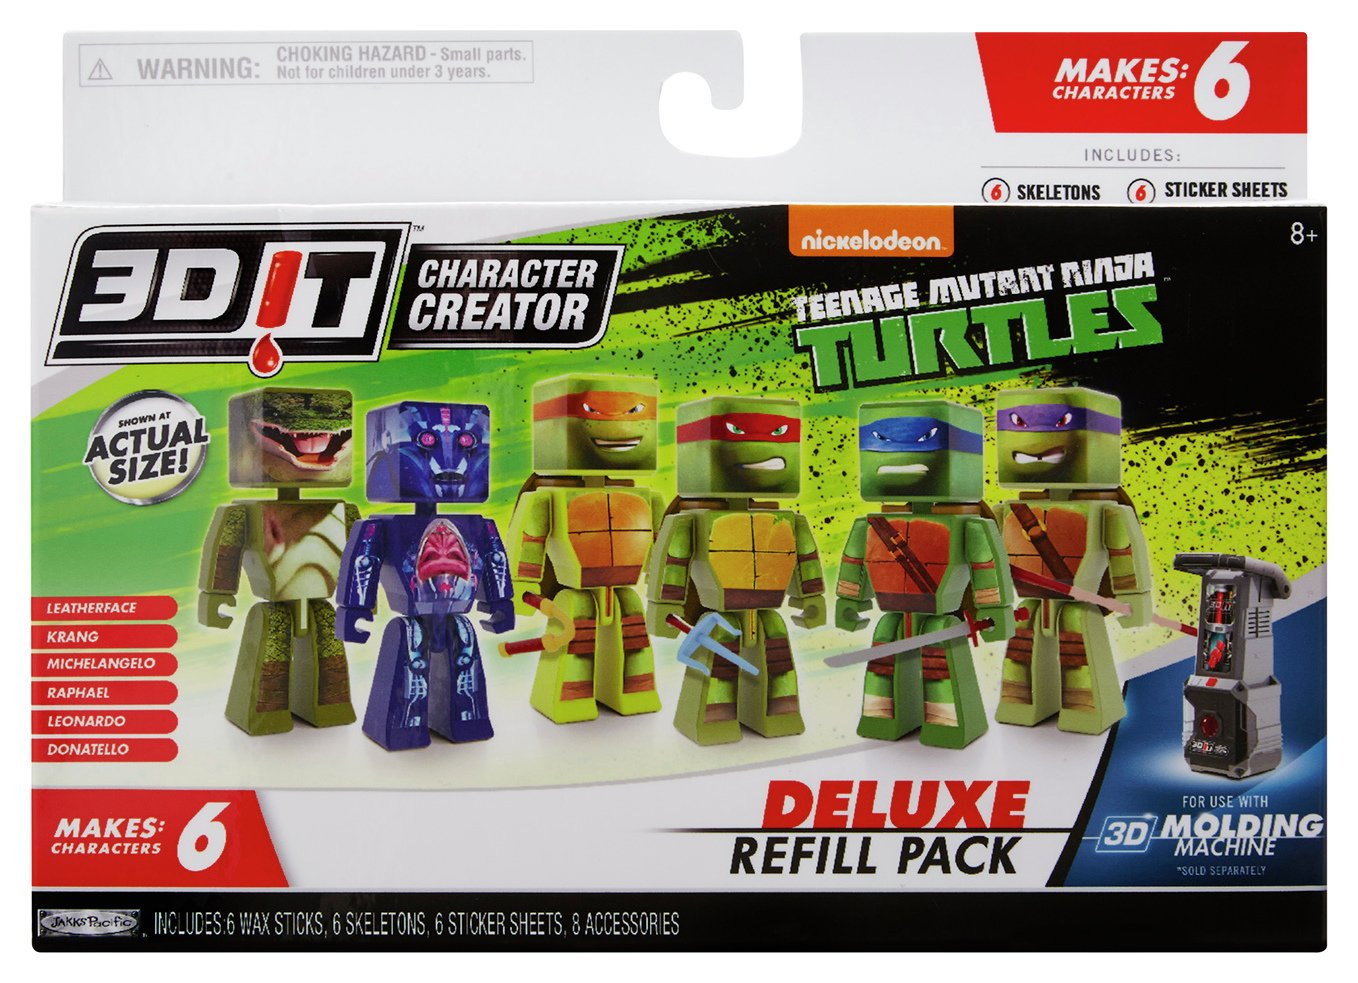 Image of 3DIT Teenage Mutant Ninja Turtles Refill Pack